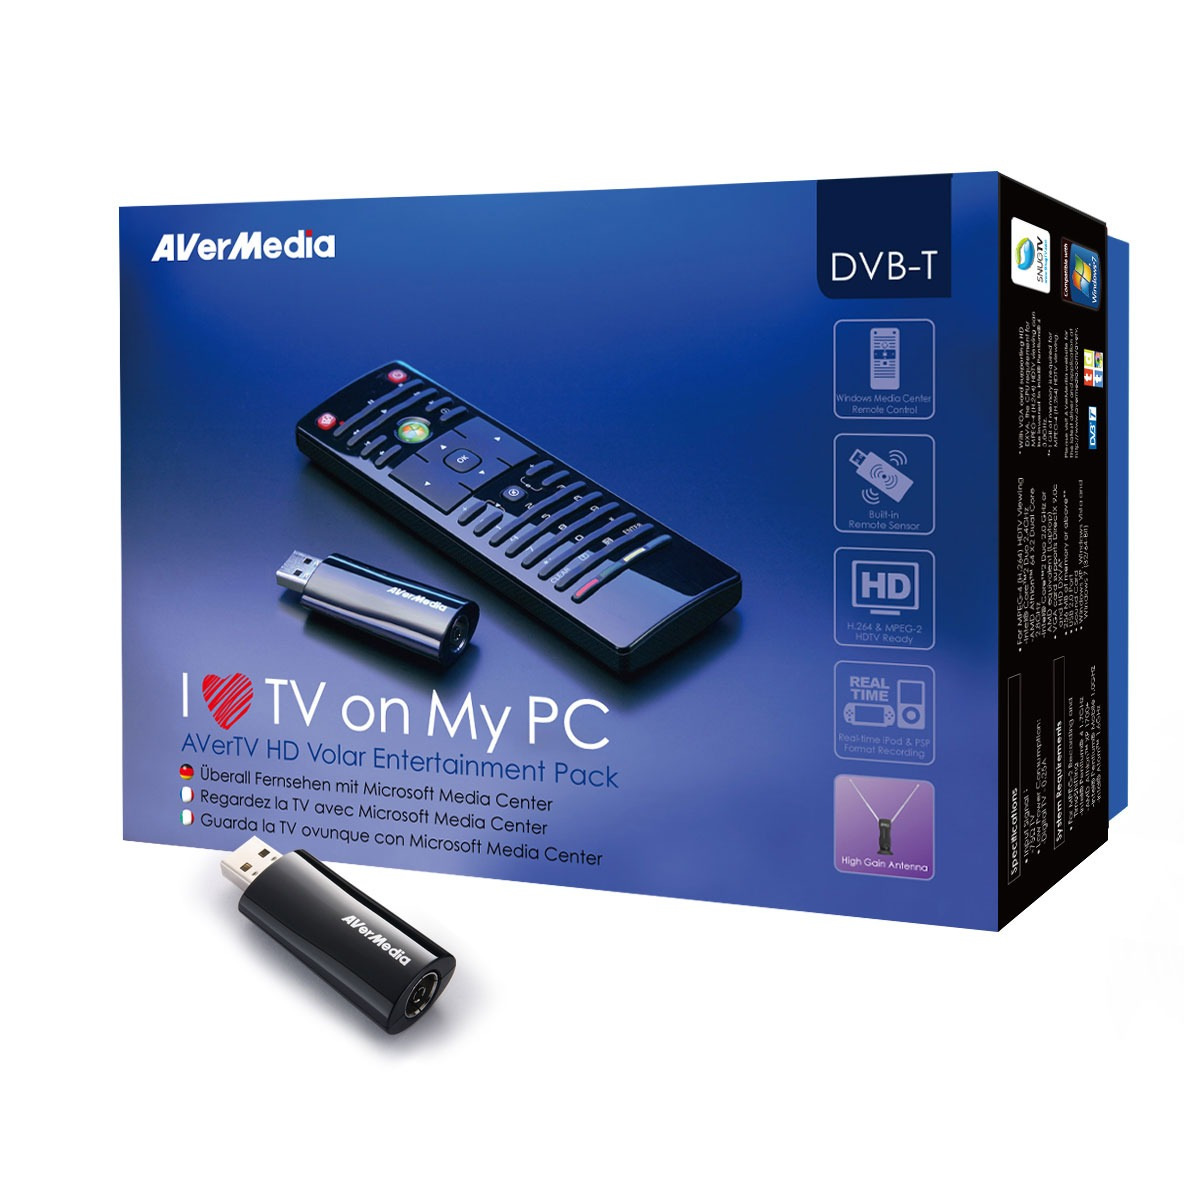 avermedia avertv hd volar entertainment pack tuner tnt usb avermedia technologies sur ldlc. Black Bedroom Furniture Sets. Home Design Ideas